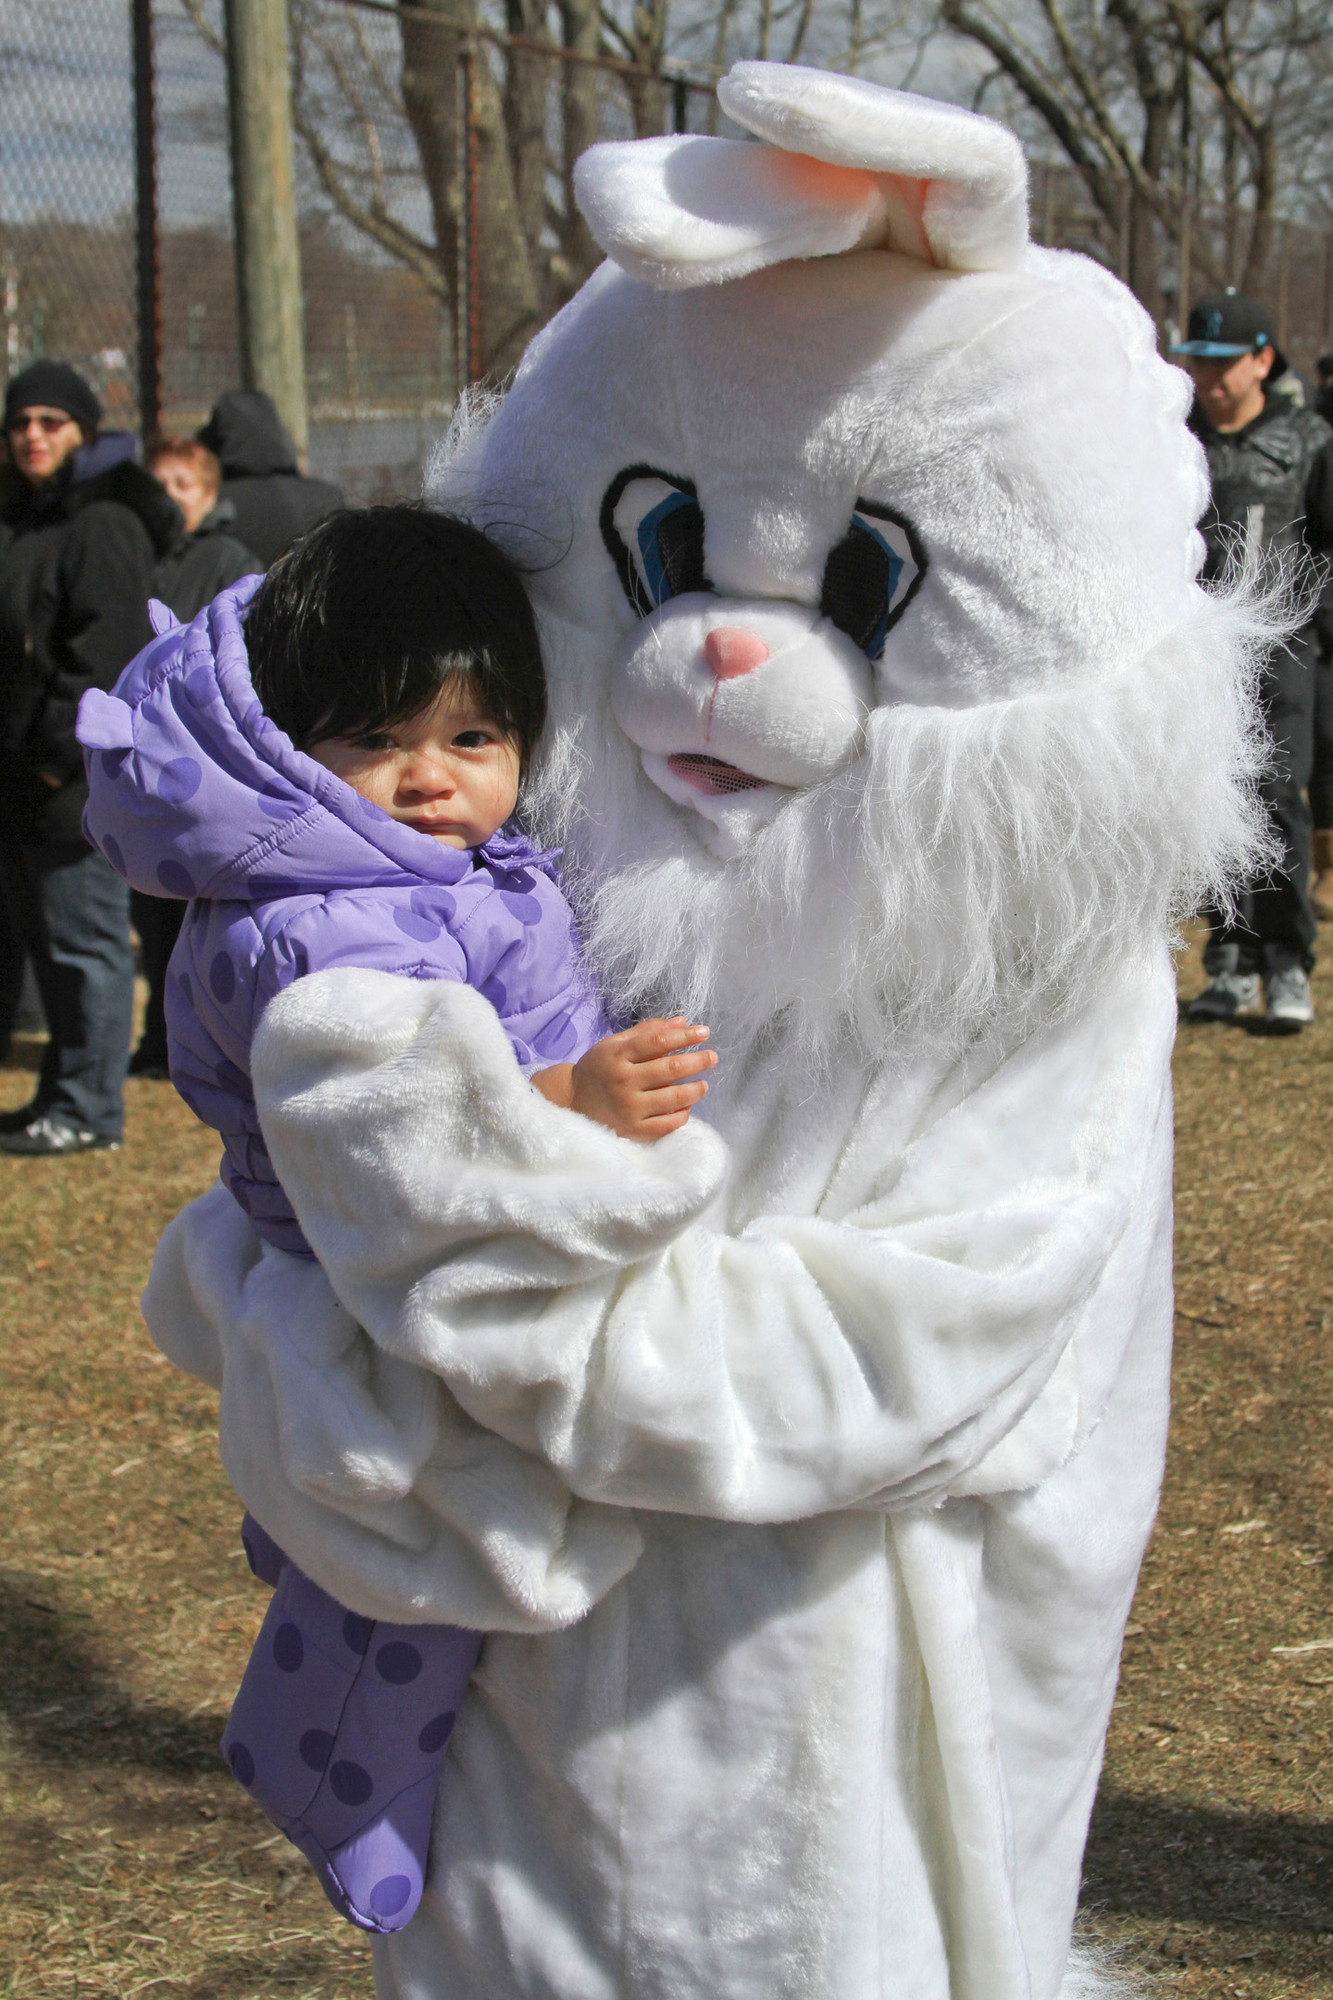 Giselle Torres, 1, got to meet the Easter Bunny on Saturday.